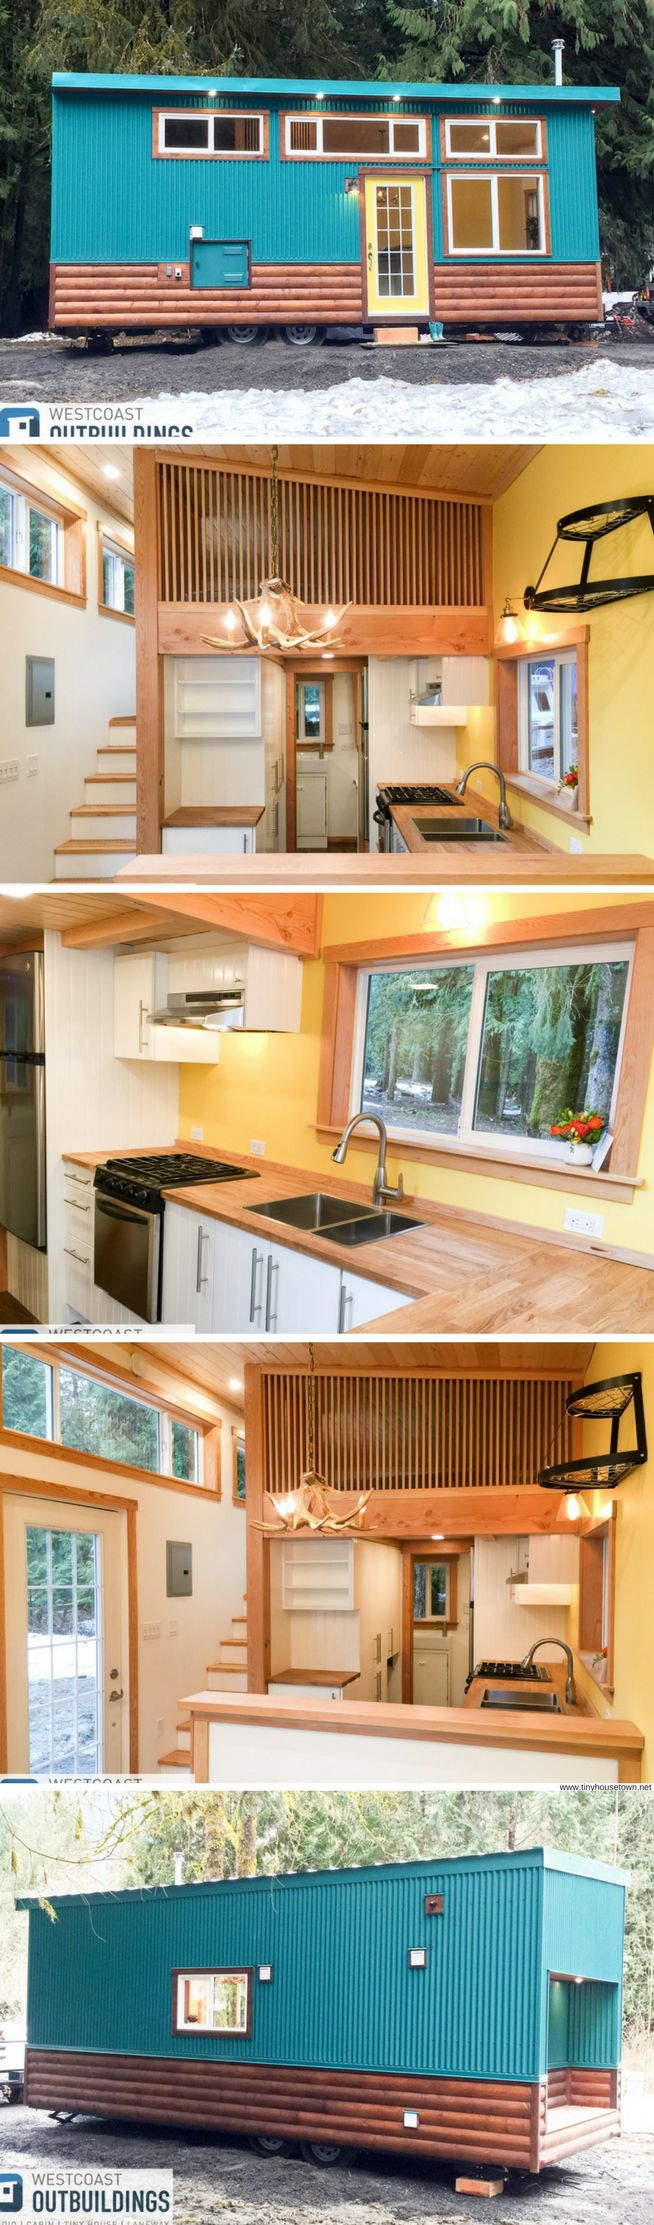 The Skookum: a 28' x 10' tiny house and park model home from West Coast Outbuildings